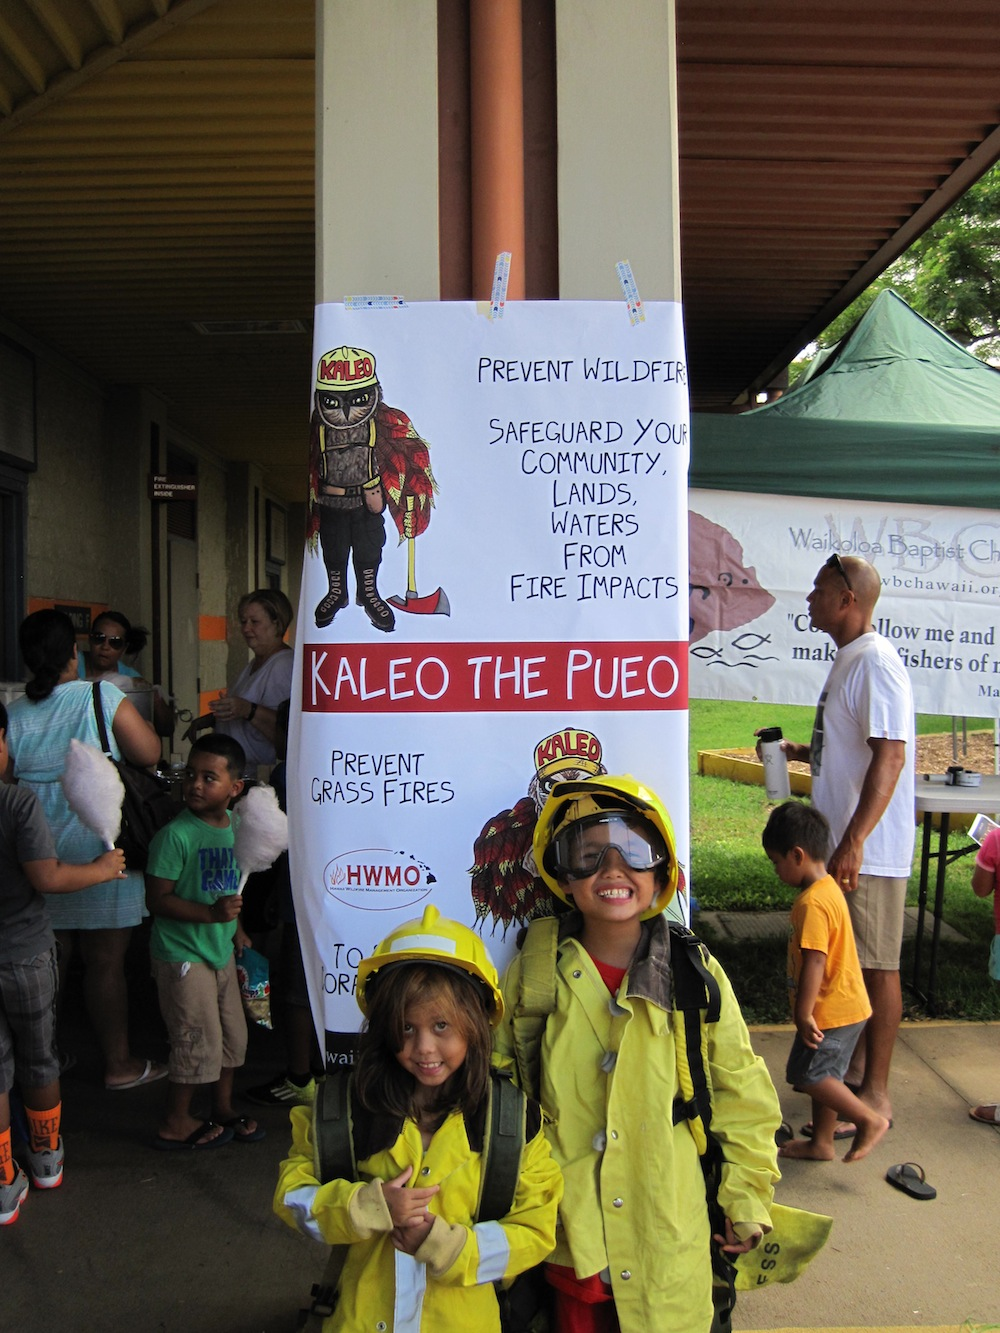 Dressing up in wildland fire gear and posing in front of Kaleo the Pueo (and cotton candy enthusiasts!)